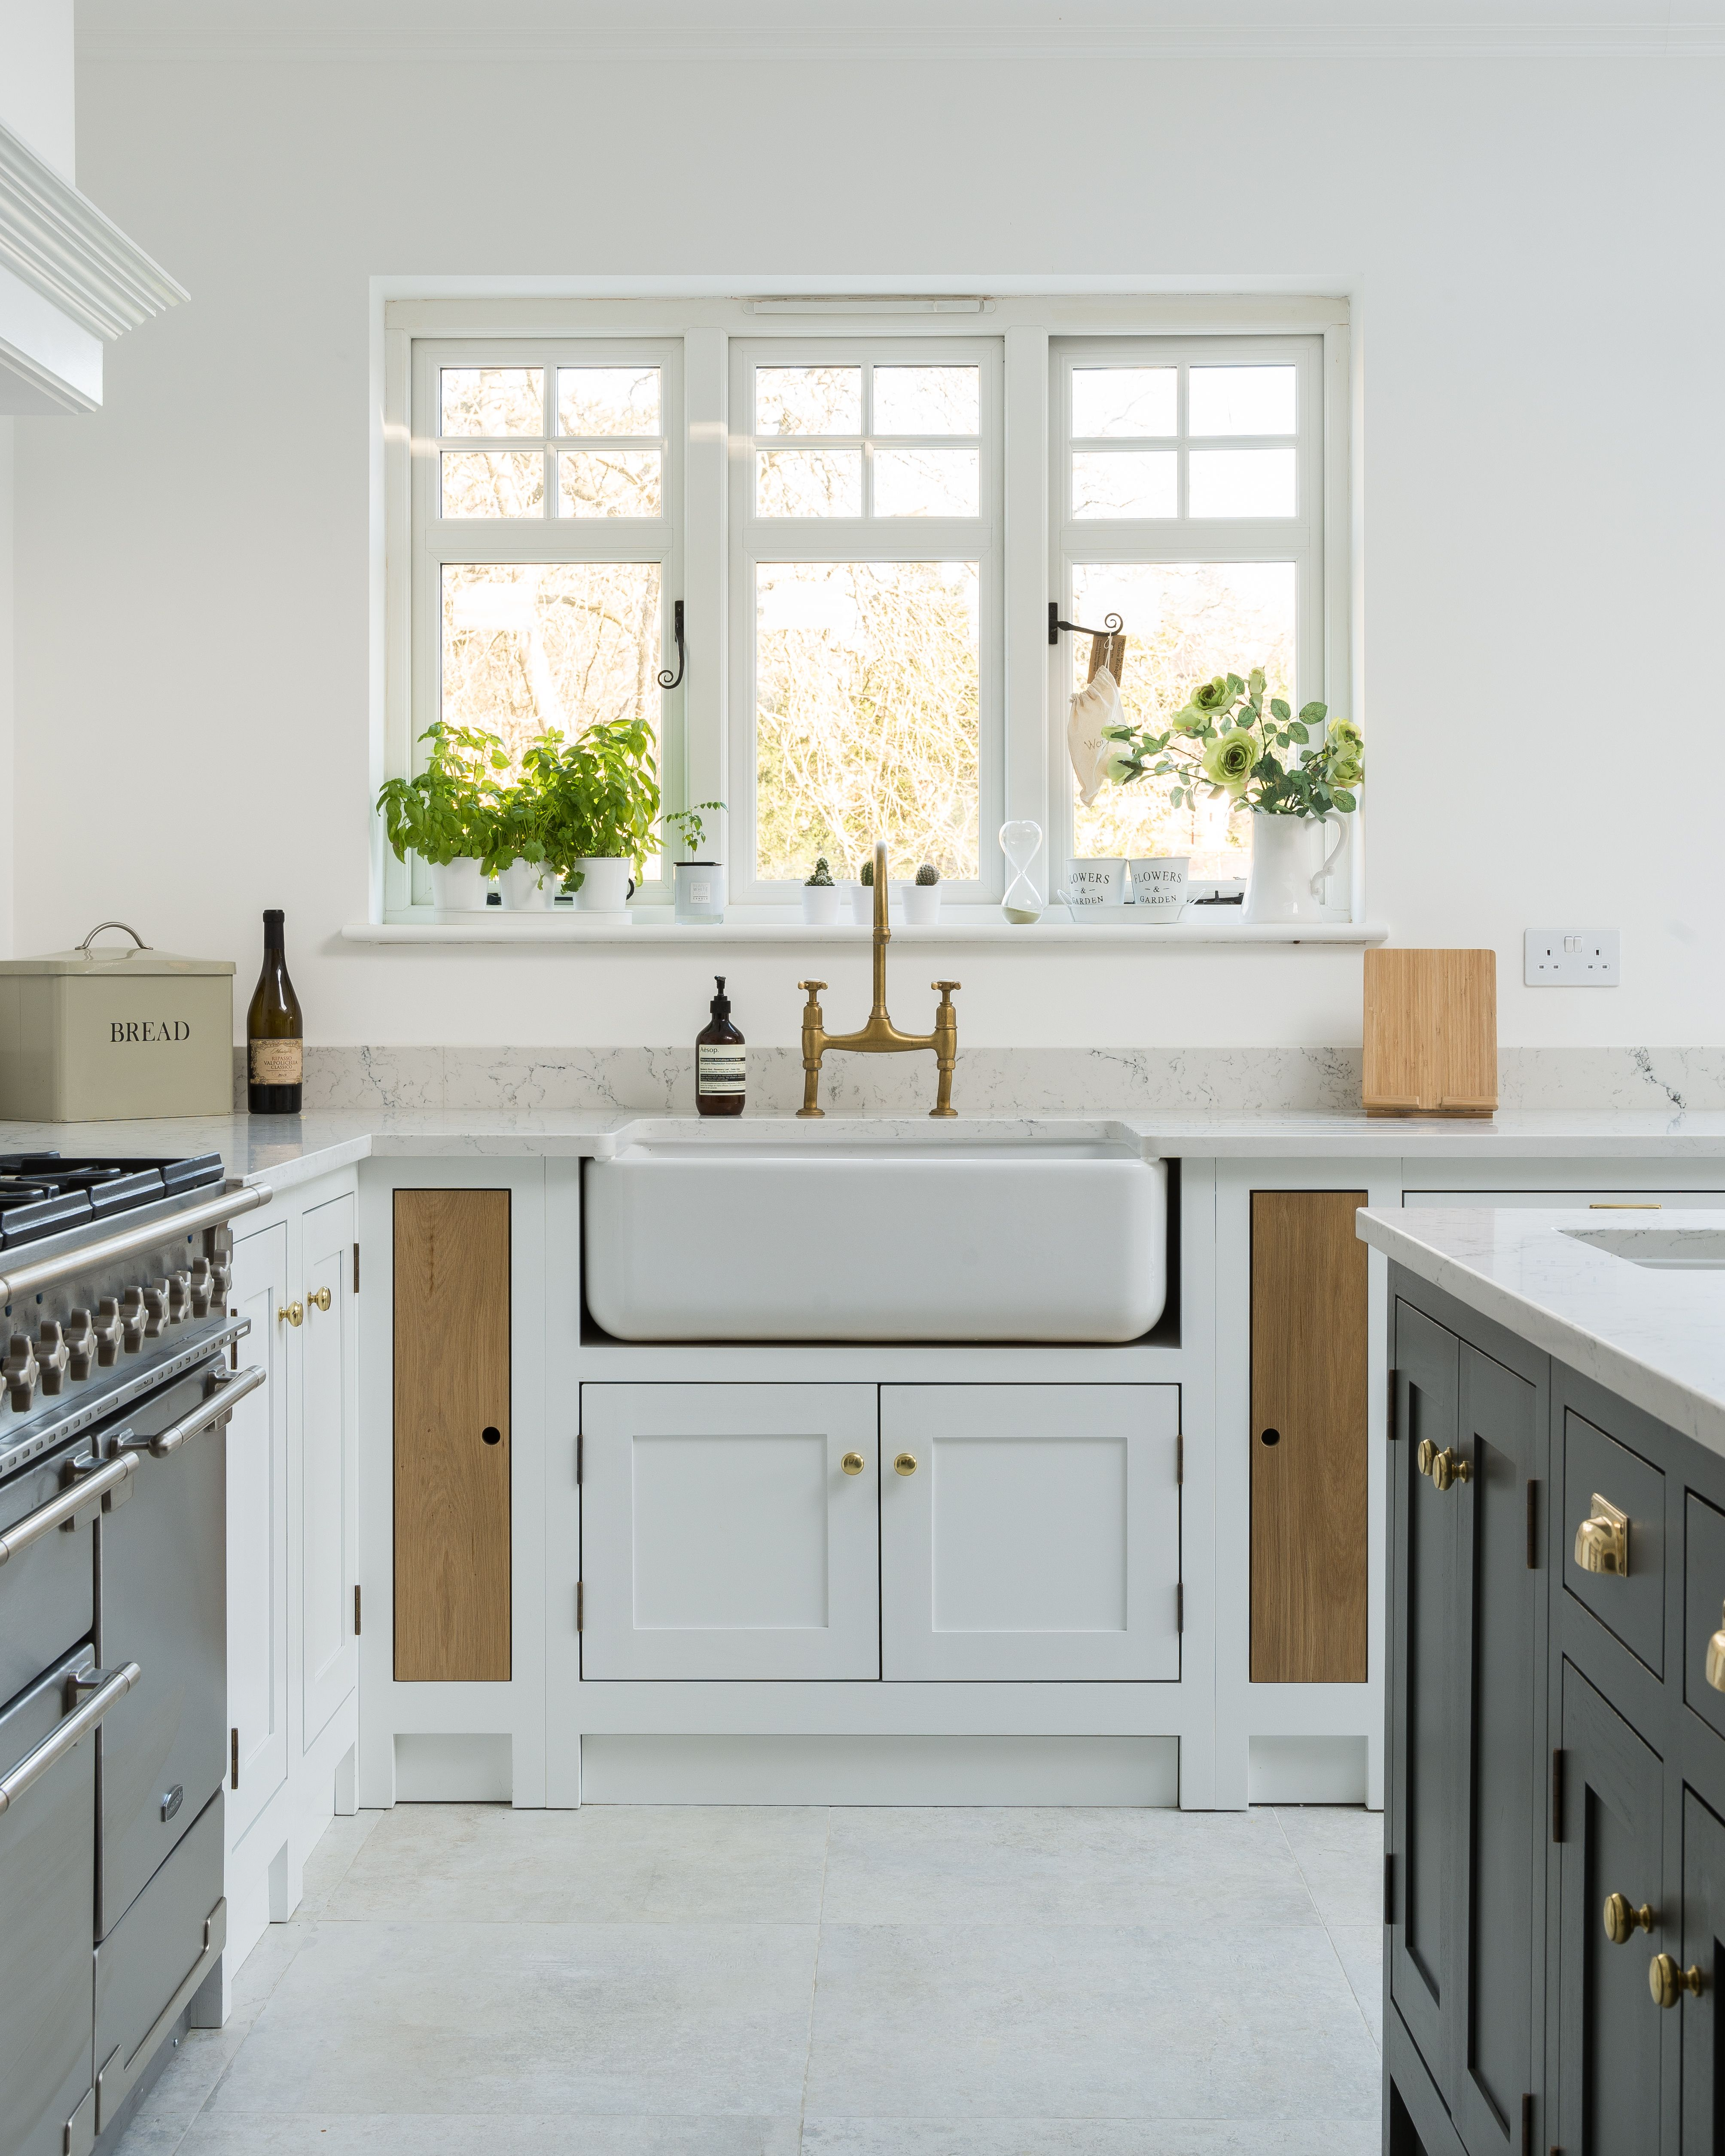 Pin By Gail Taylor On New Build Shaker Style Kitchens Kitchen